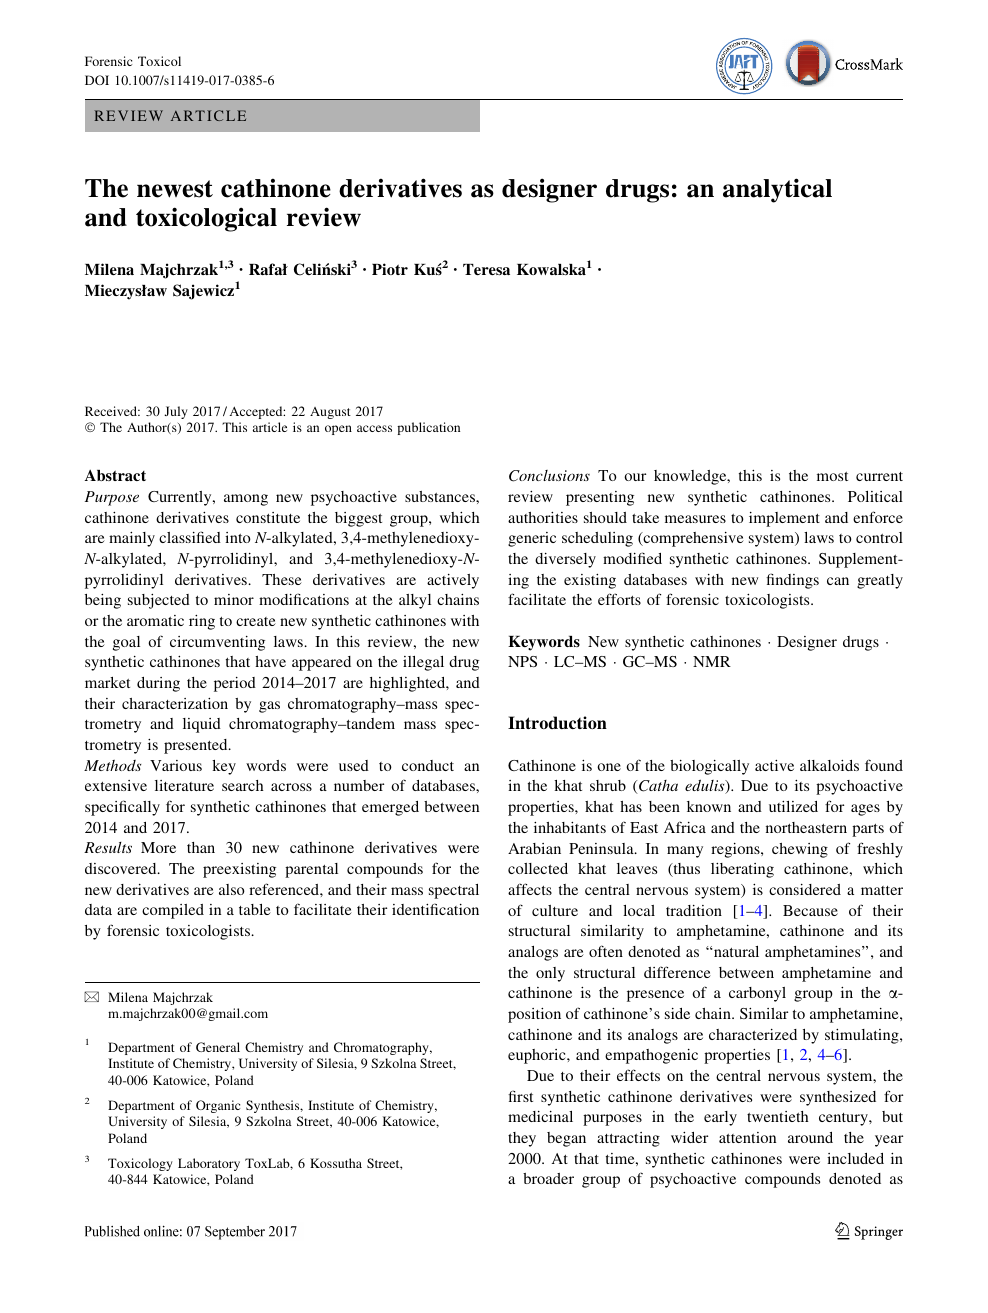 The newest cathinone derivatives as designer drugs: an analytical